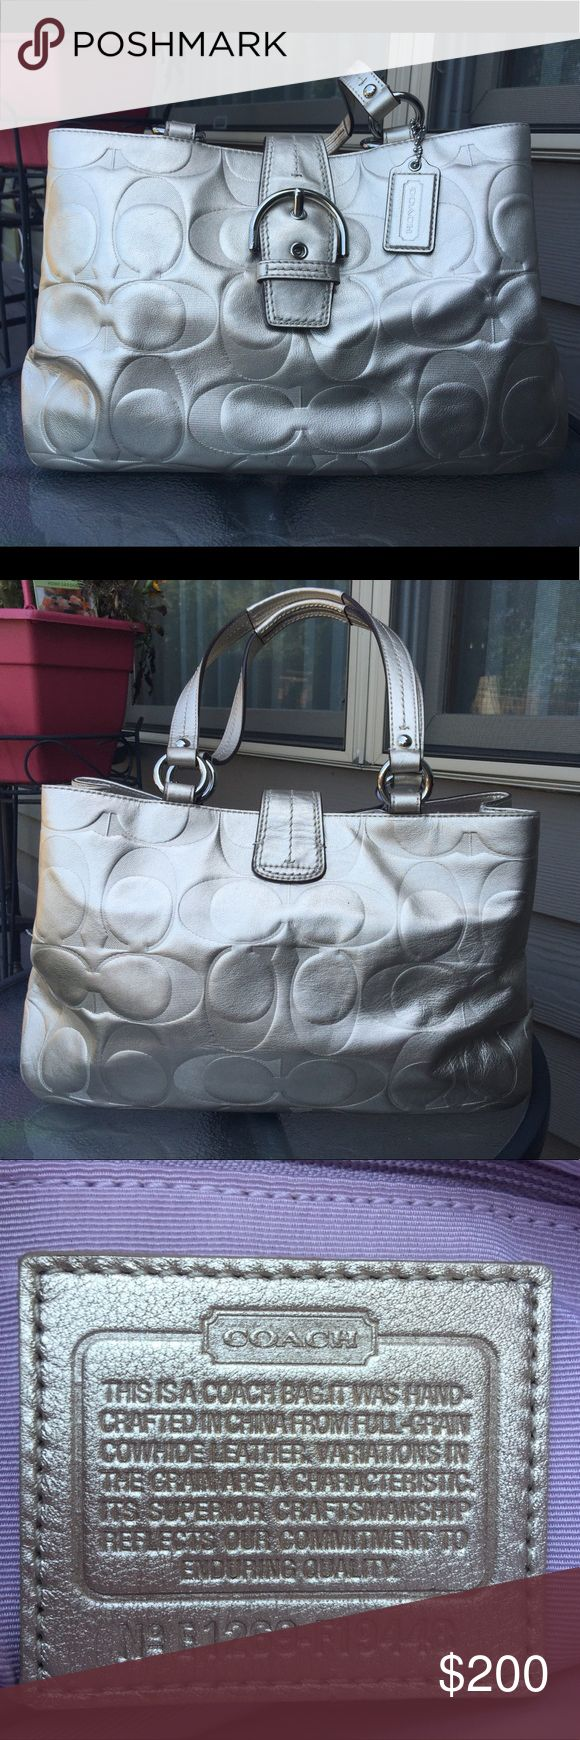 COACH ONE-OF-A-KIND Beautiful Pewter Color! VERY UNIQUE Coach Bag in a beautiful pewter color with a light purple interior.  Like New! Coach Bags Shoulder Bags